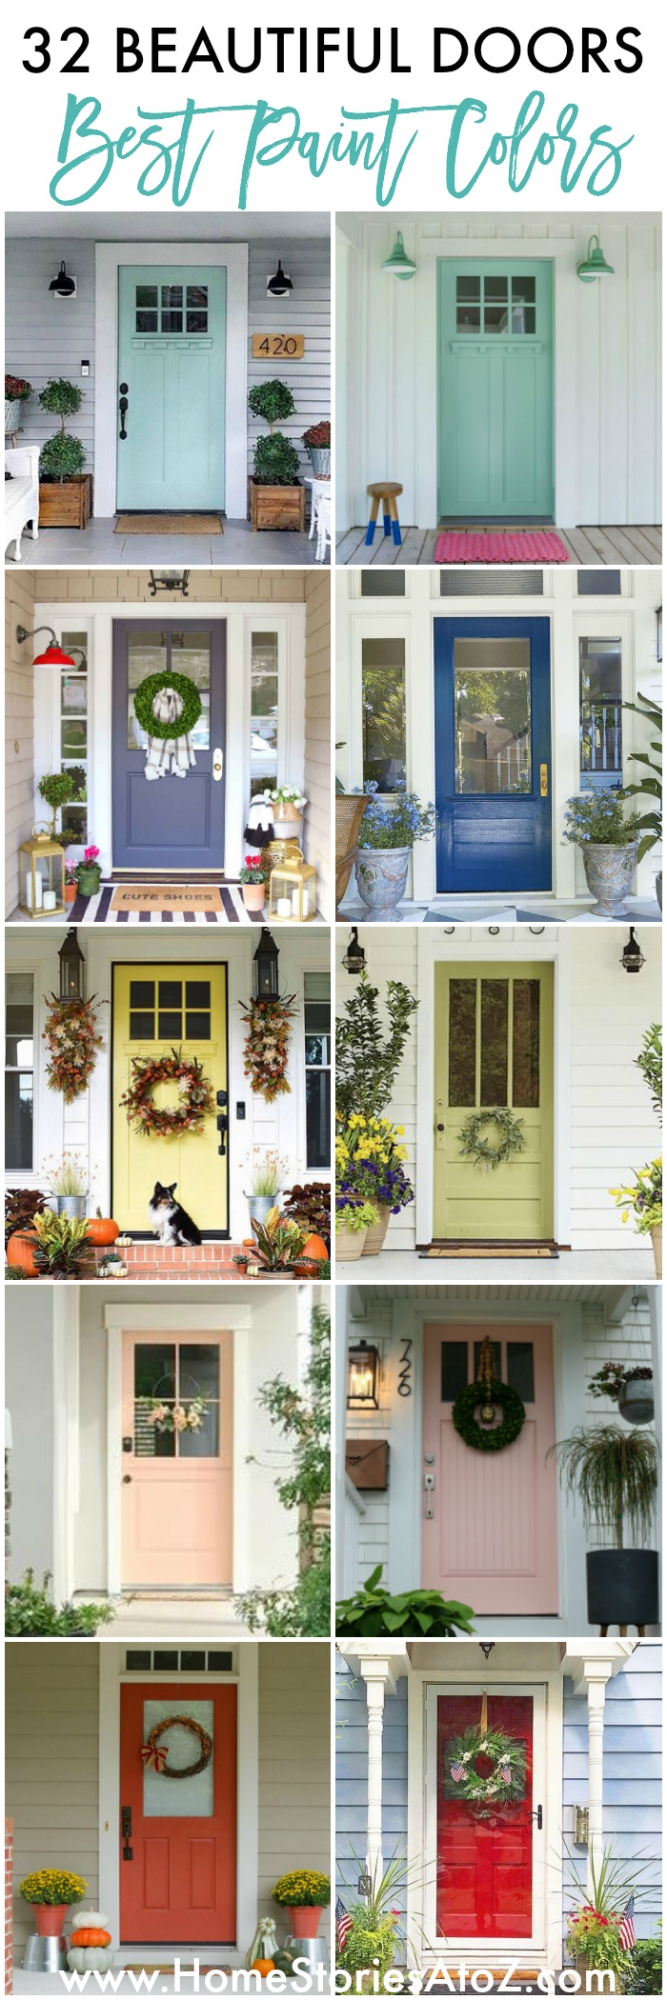 32 Beautiful Paint Colors for Your Door - Home Stories A to Z